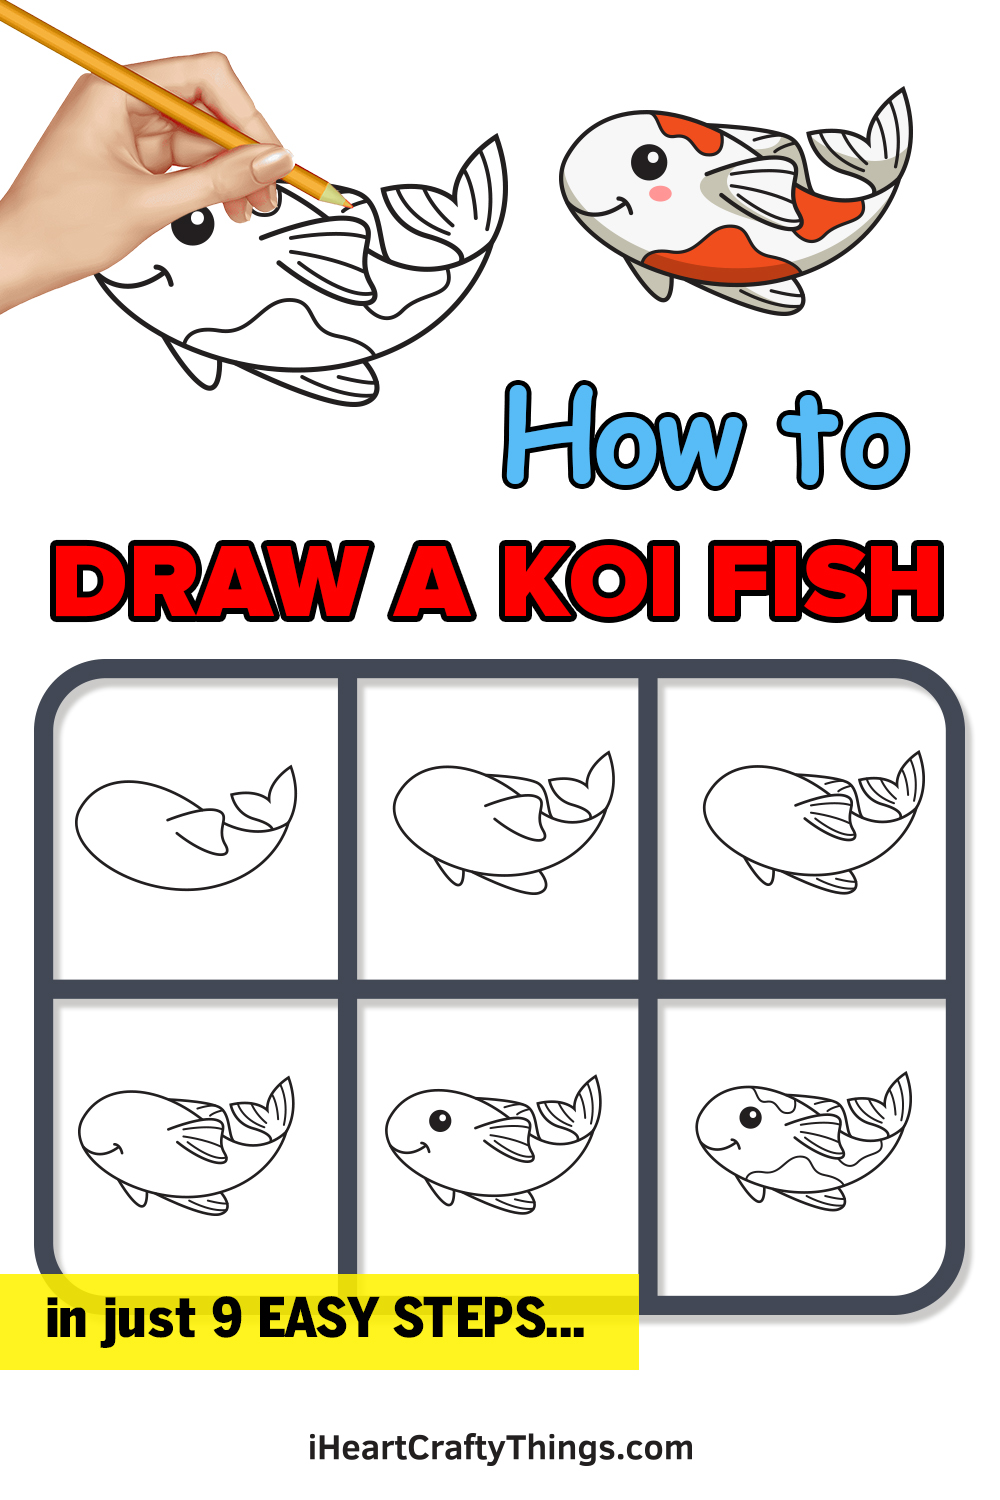 how to draw a koi fish in 9 easy steps